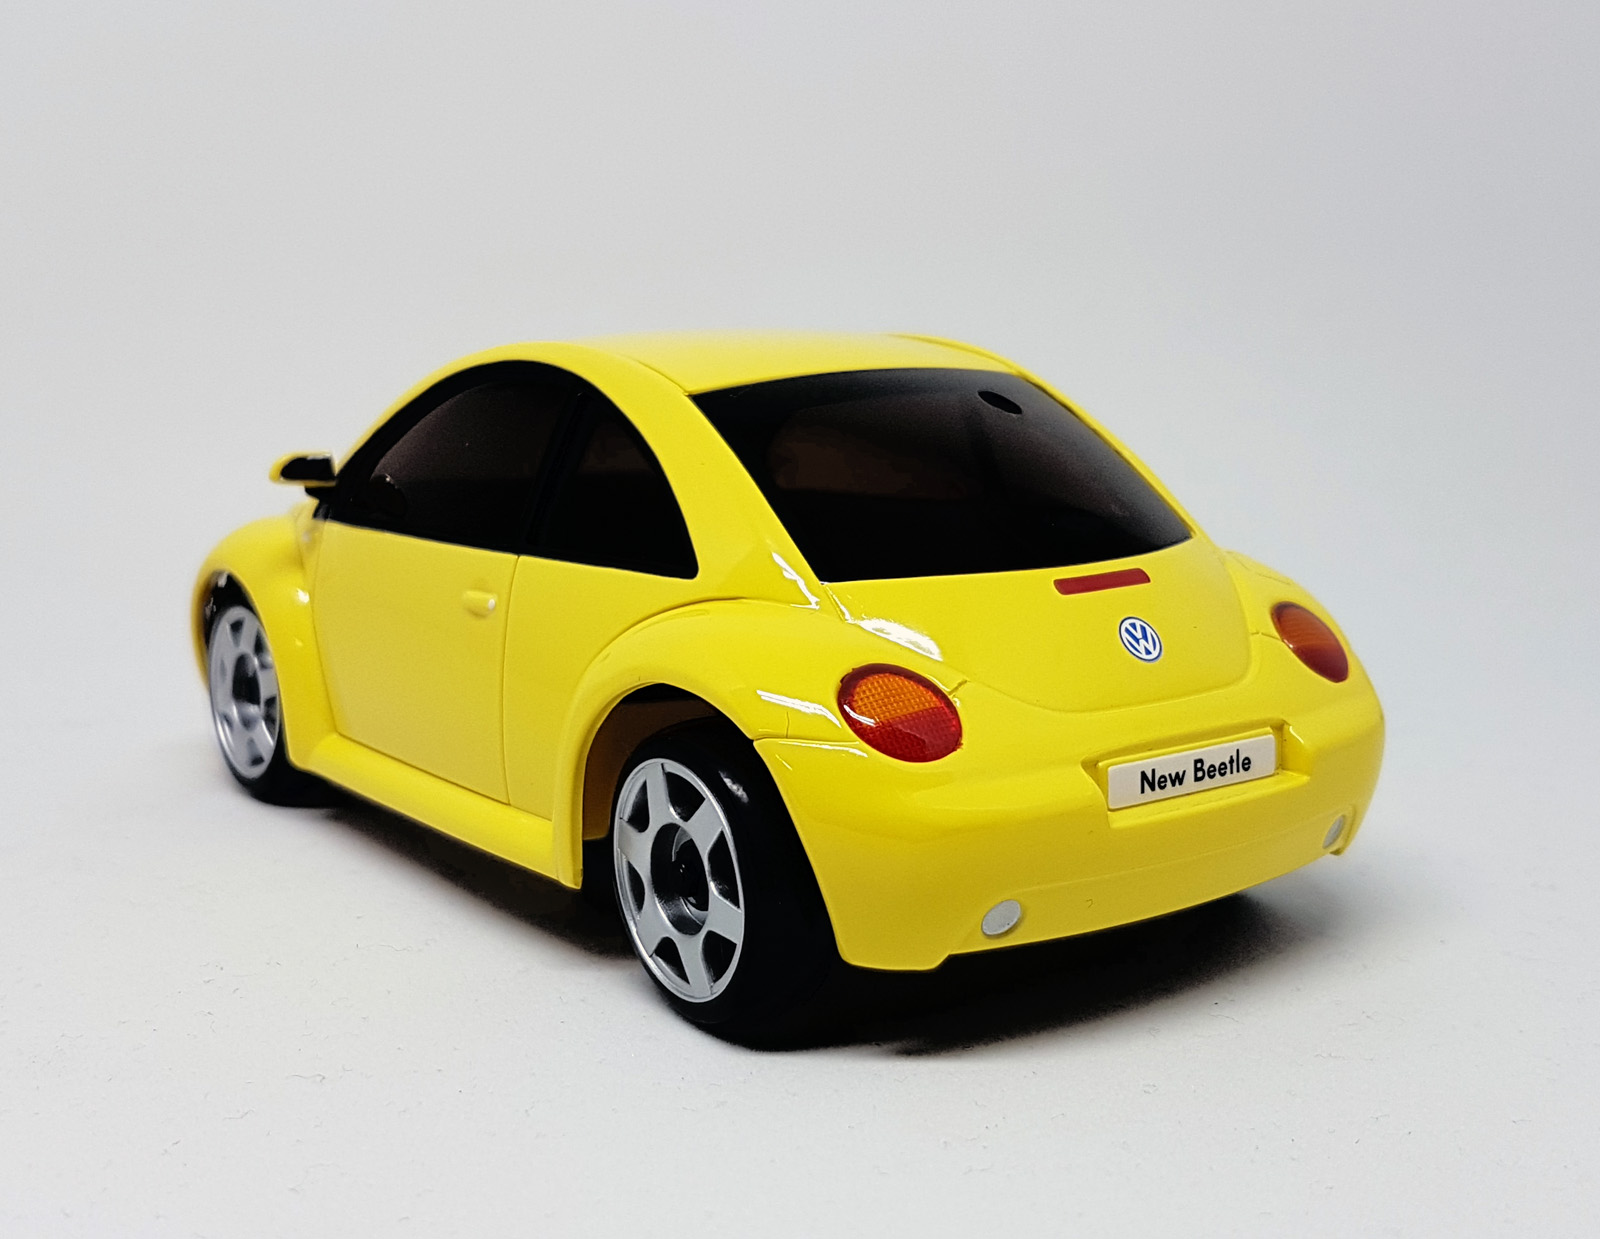 mini z mr03ve vw new beetle gelb kyosho x24. Black Bedroom Furniture Sets. Home Design Ideas